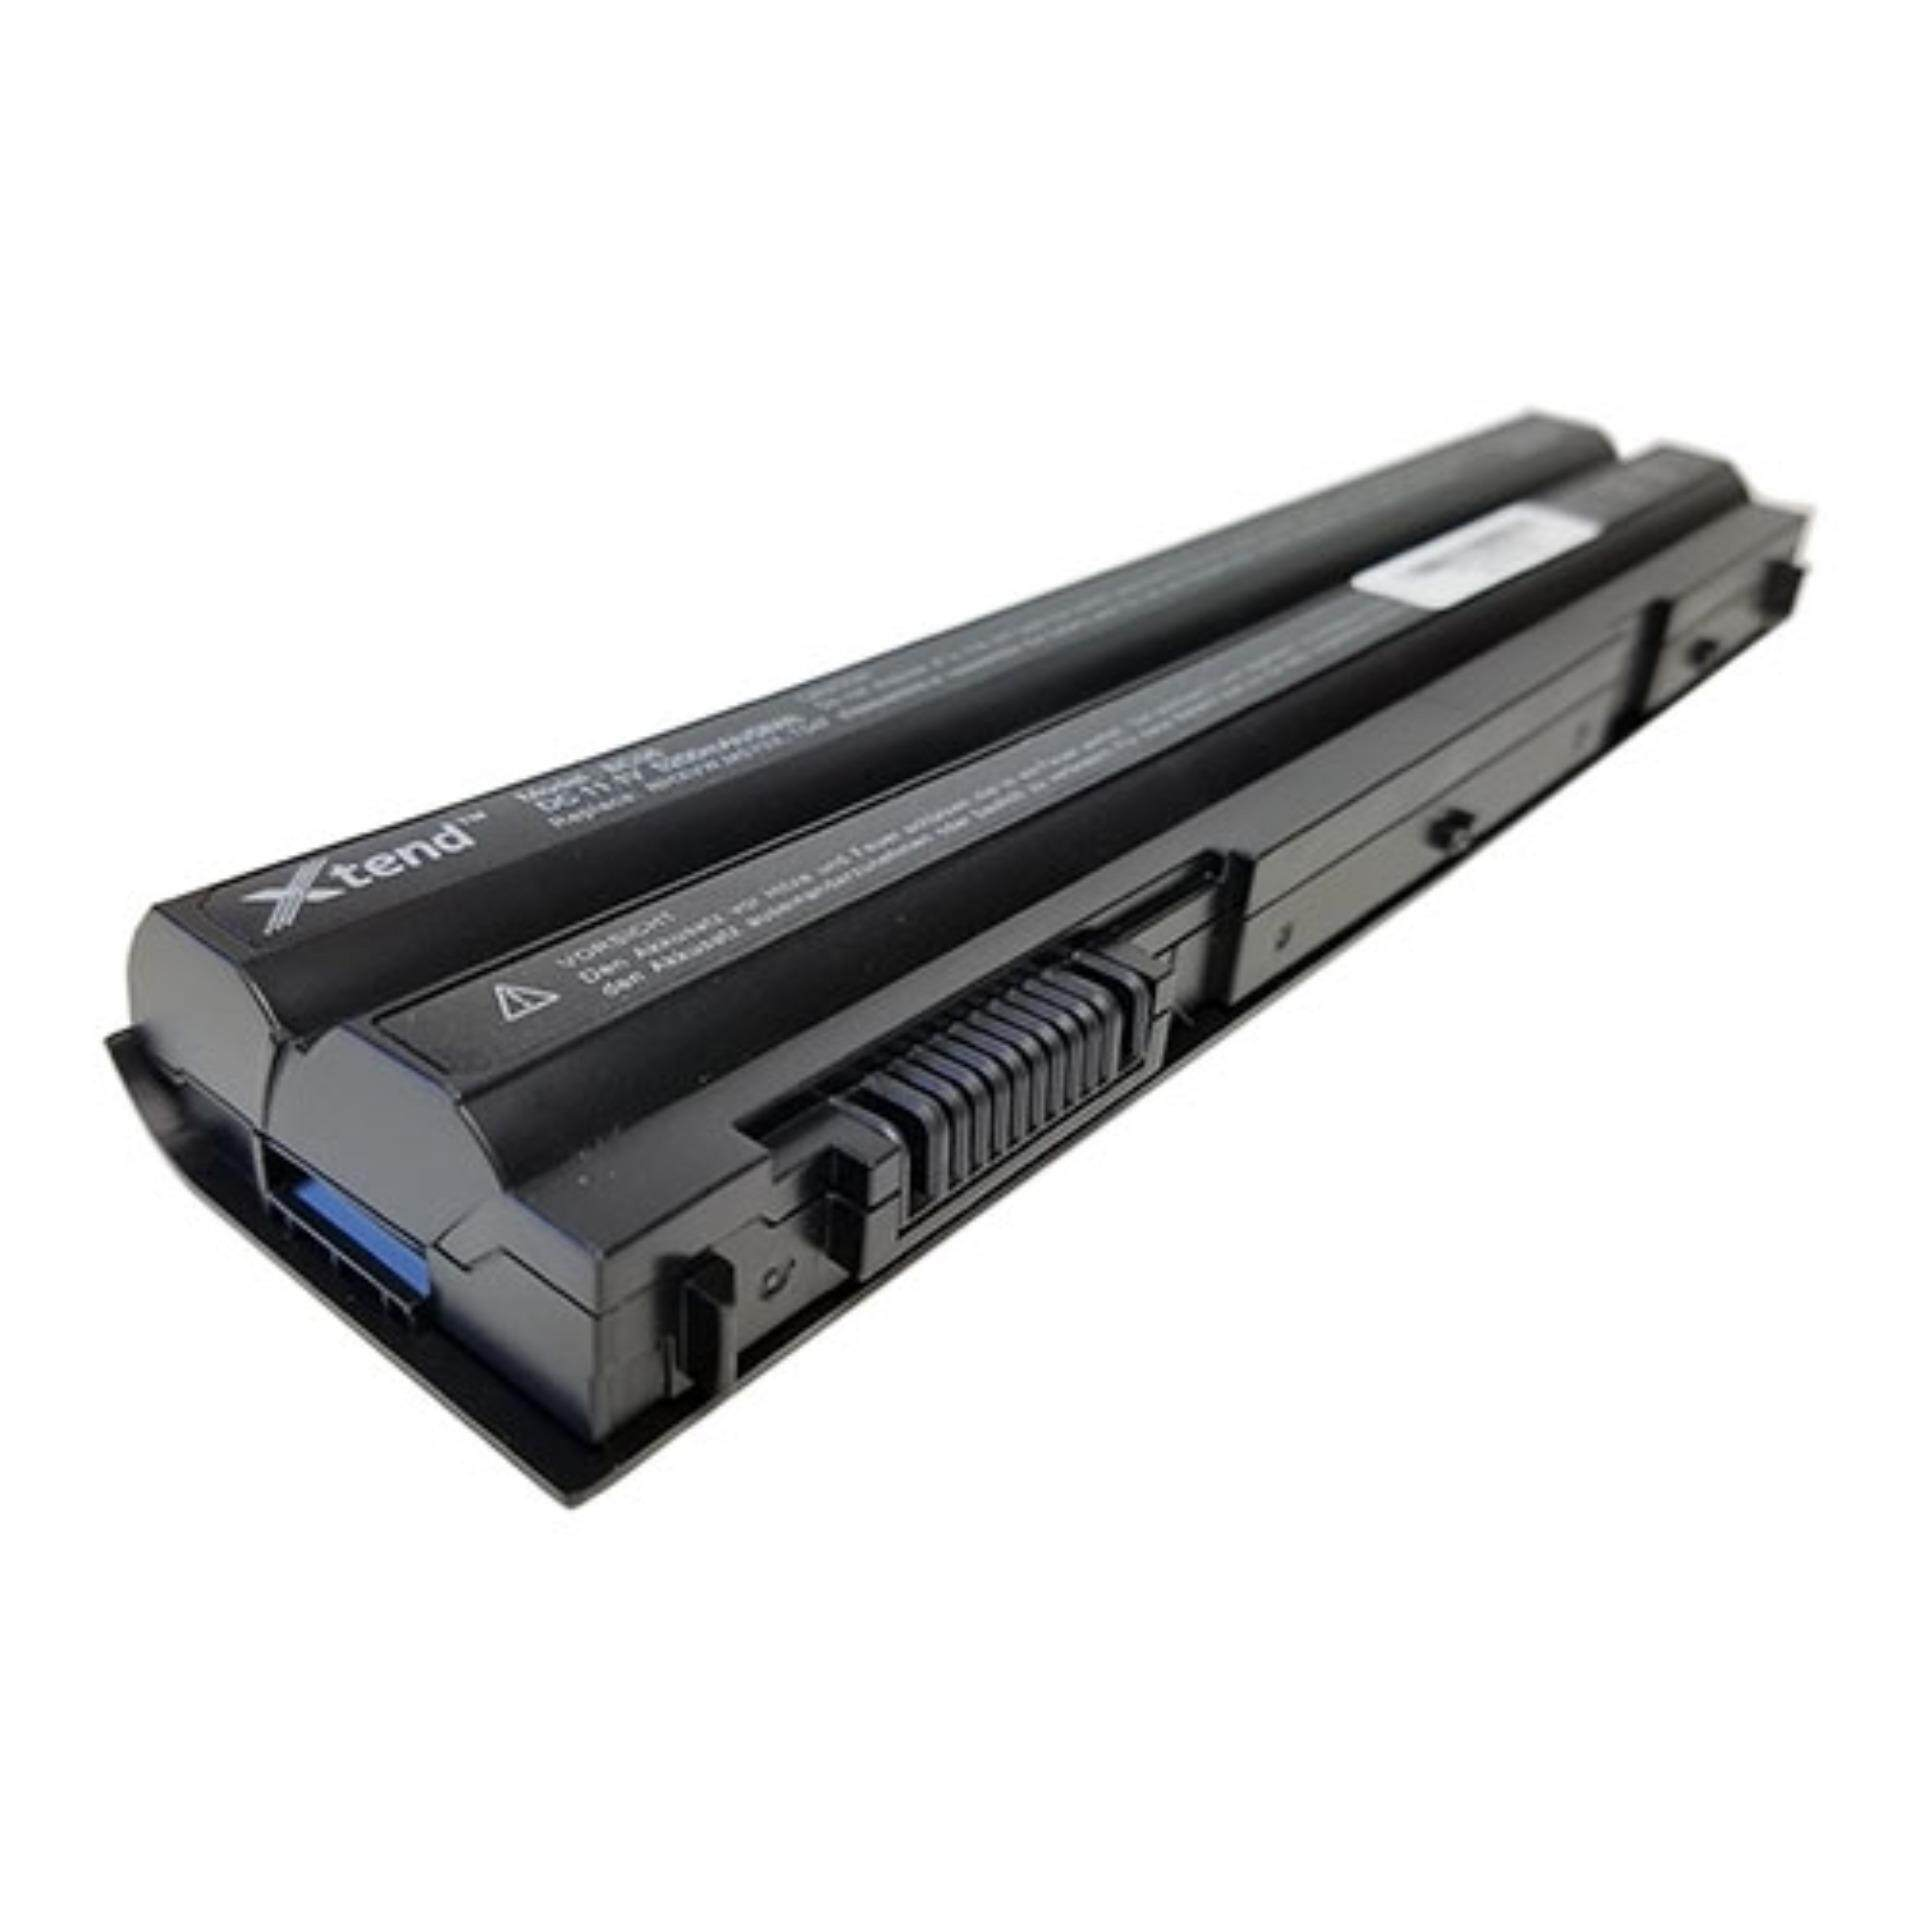 DELL P15F001 P15F002 P15G001 SERIES Laptop Battery [ FREE SHIPPING ]